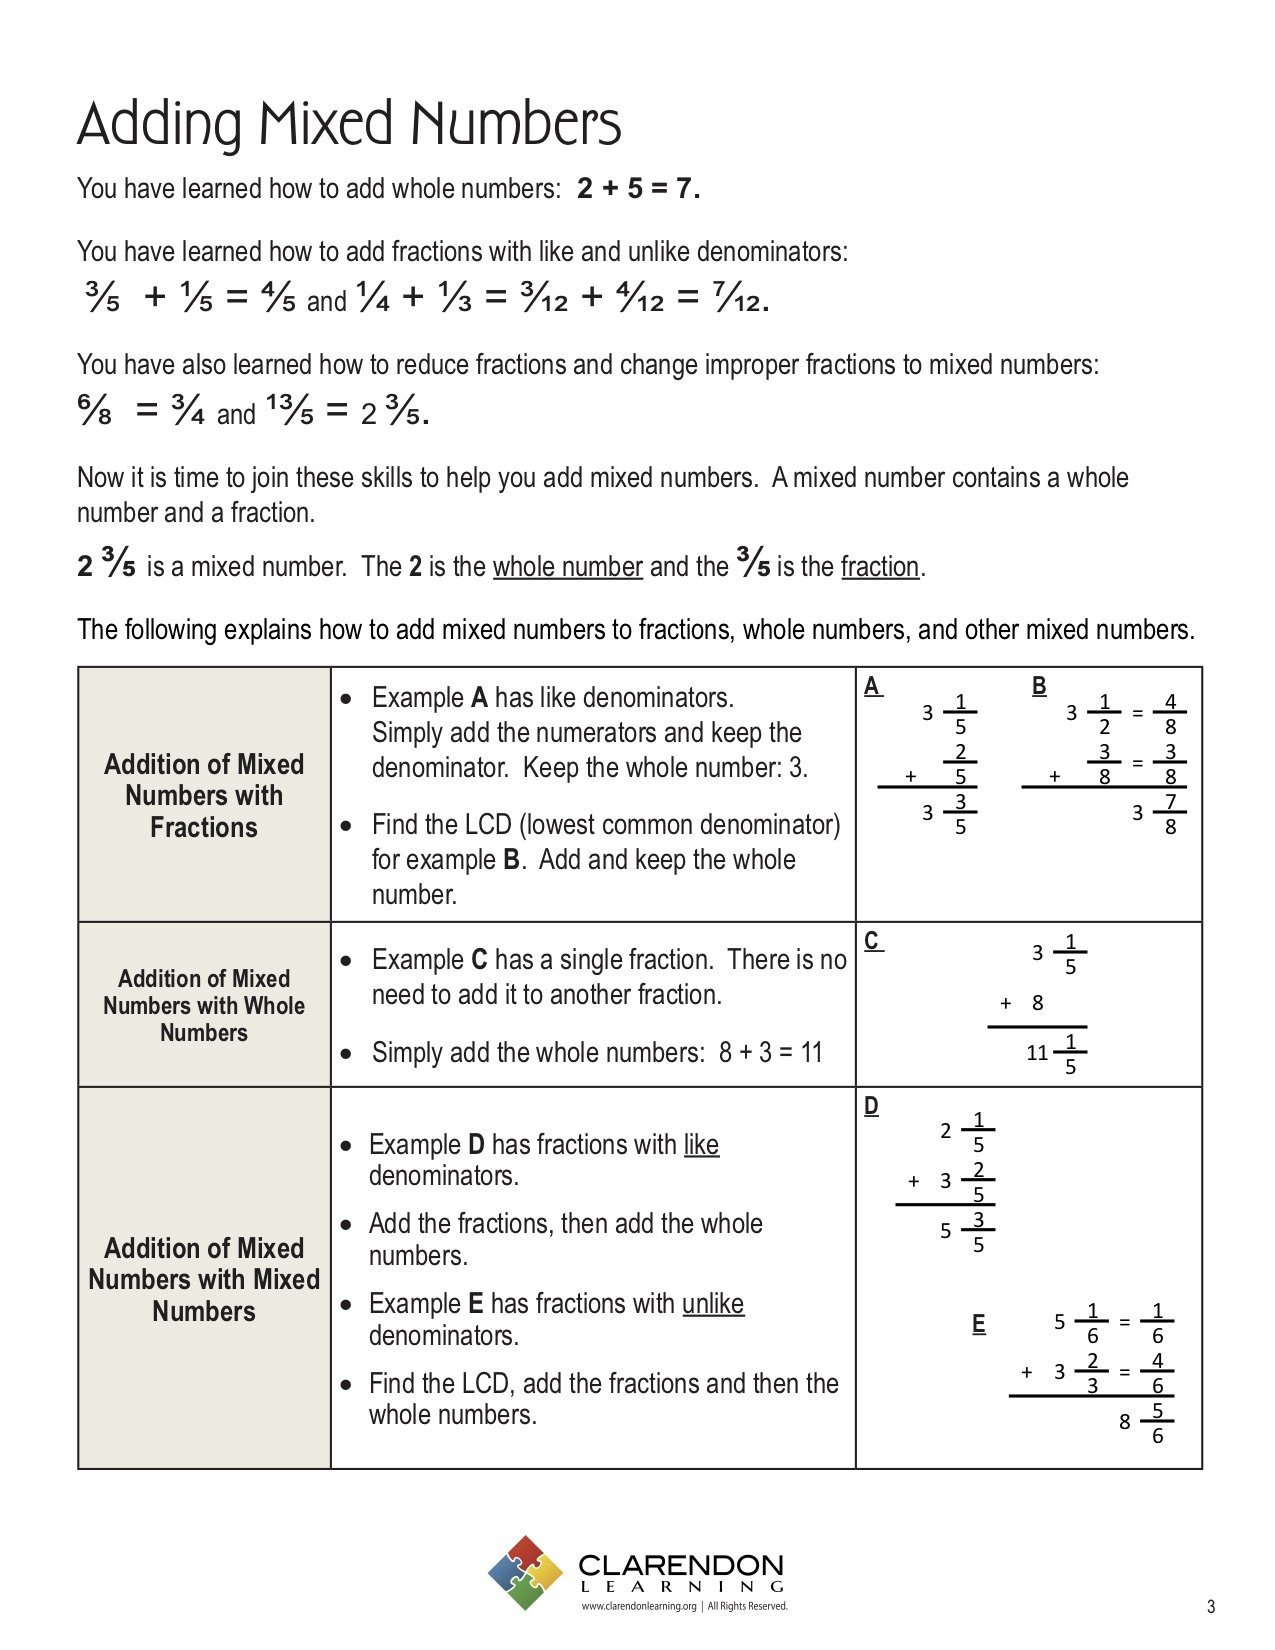 Adding and Subtracting Fractions Mixed Worksheet